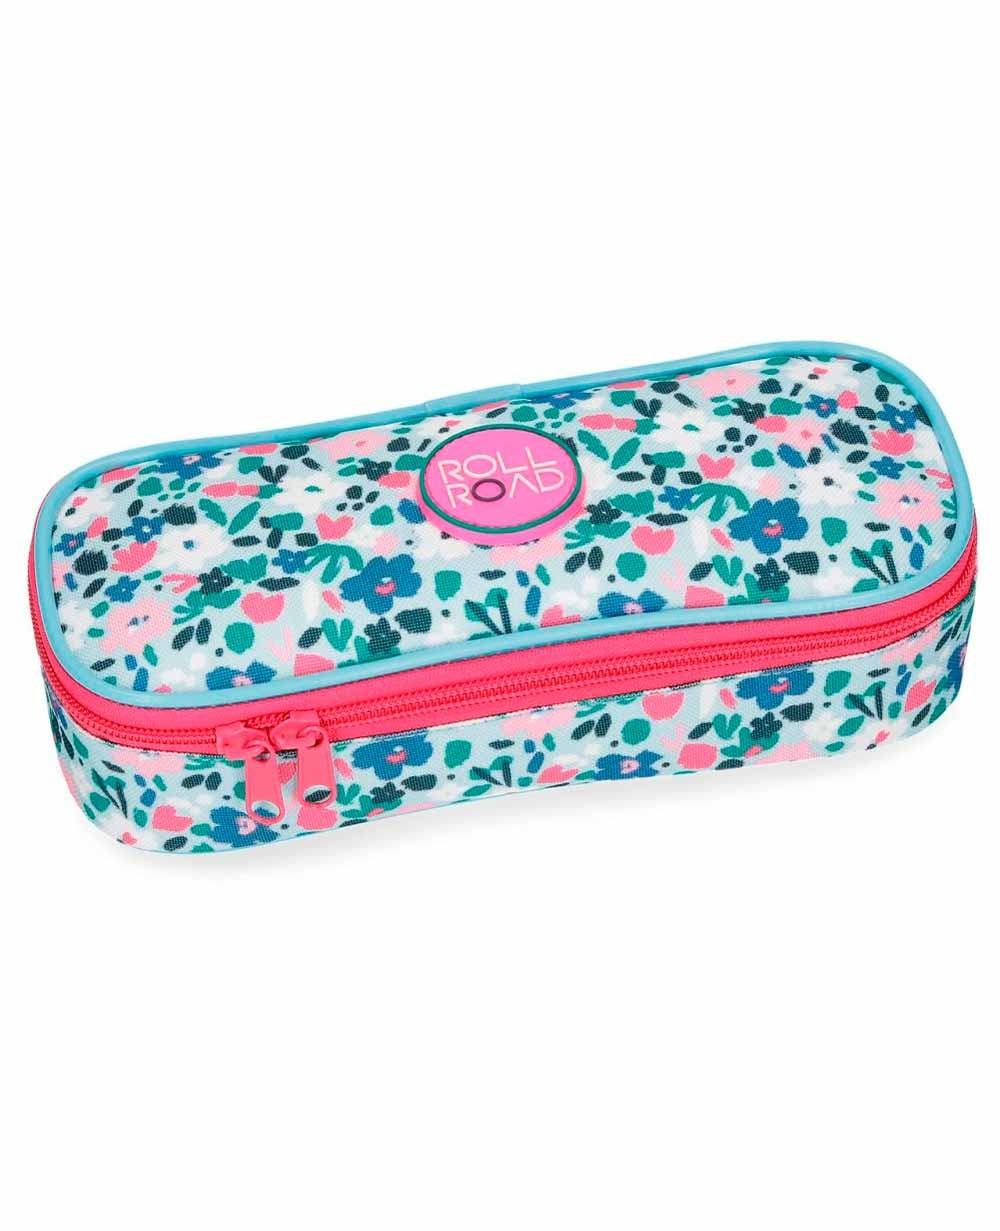 Roll Road Pretty Blue Estuche Azul Estampado (Foto )